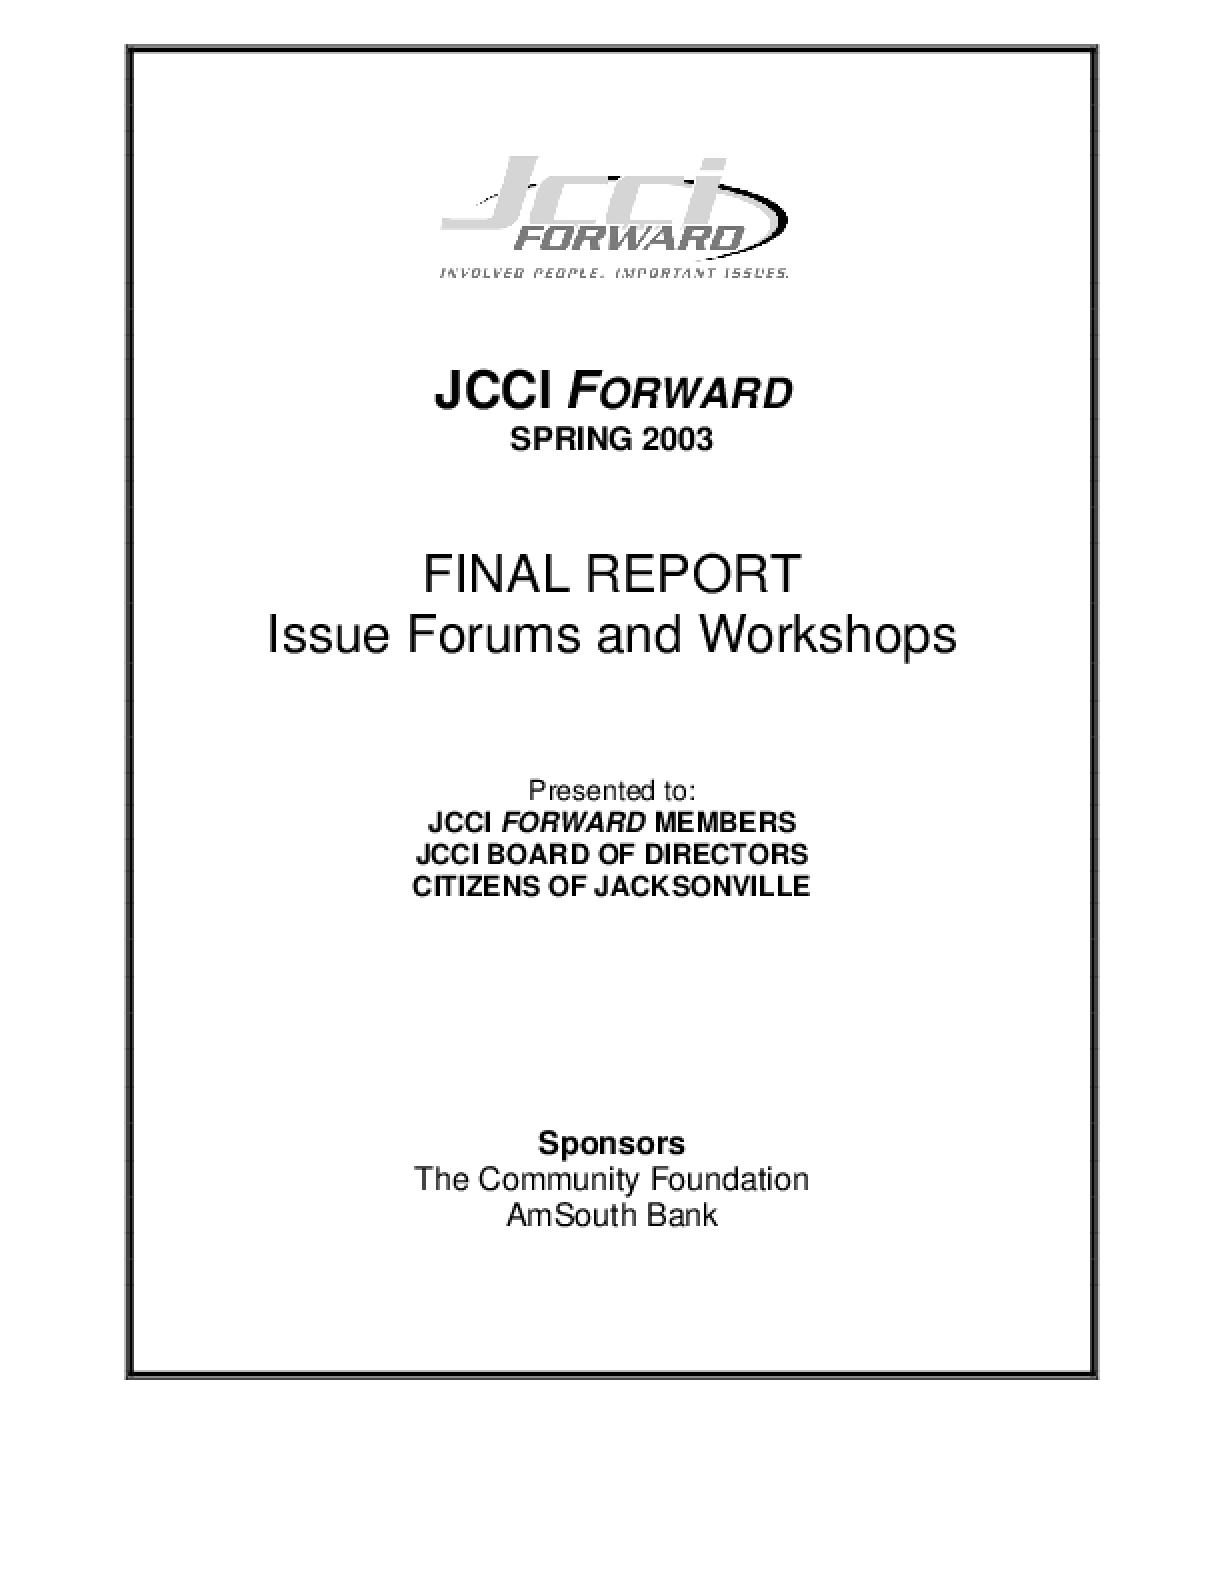 JCCI Forward: Spring 2003 Final Report - Issue Forums and Workshops